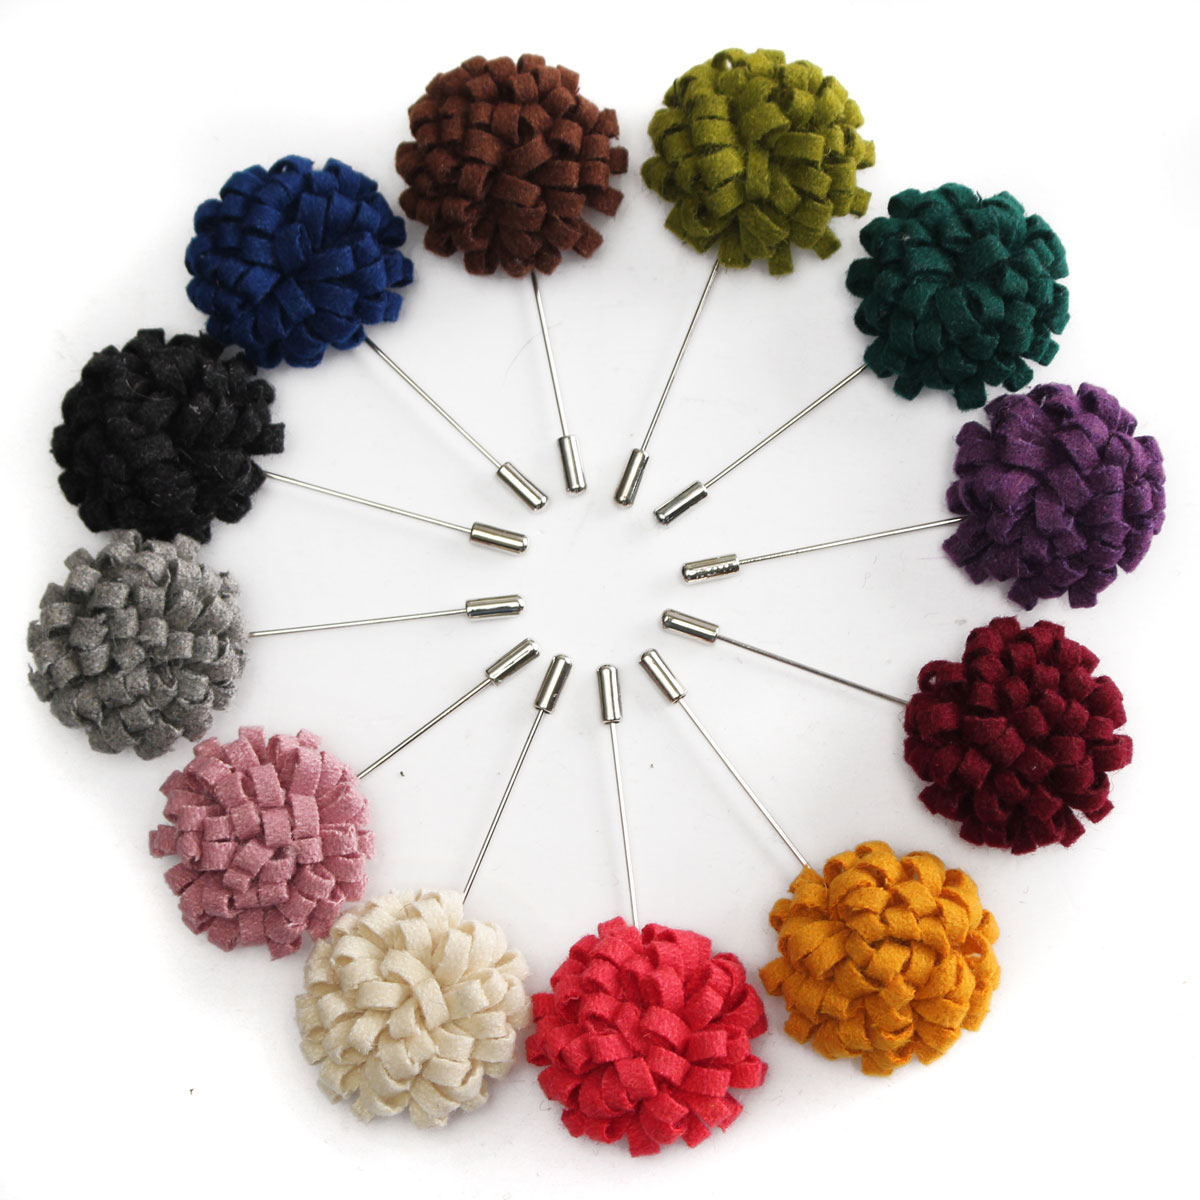 2015 New Promotion Cotton Felt Lapel Flowers Pin Handmade Boutonniere Floral Stick Pin Mens Accessories 13 Colors For Selection(China (Mainland))